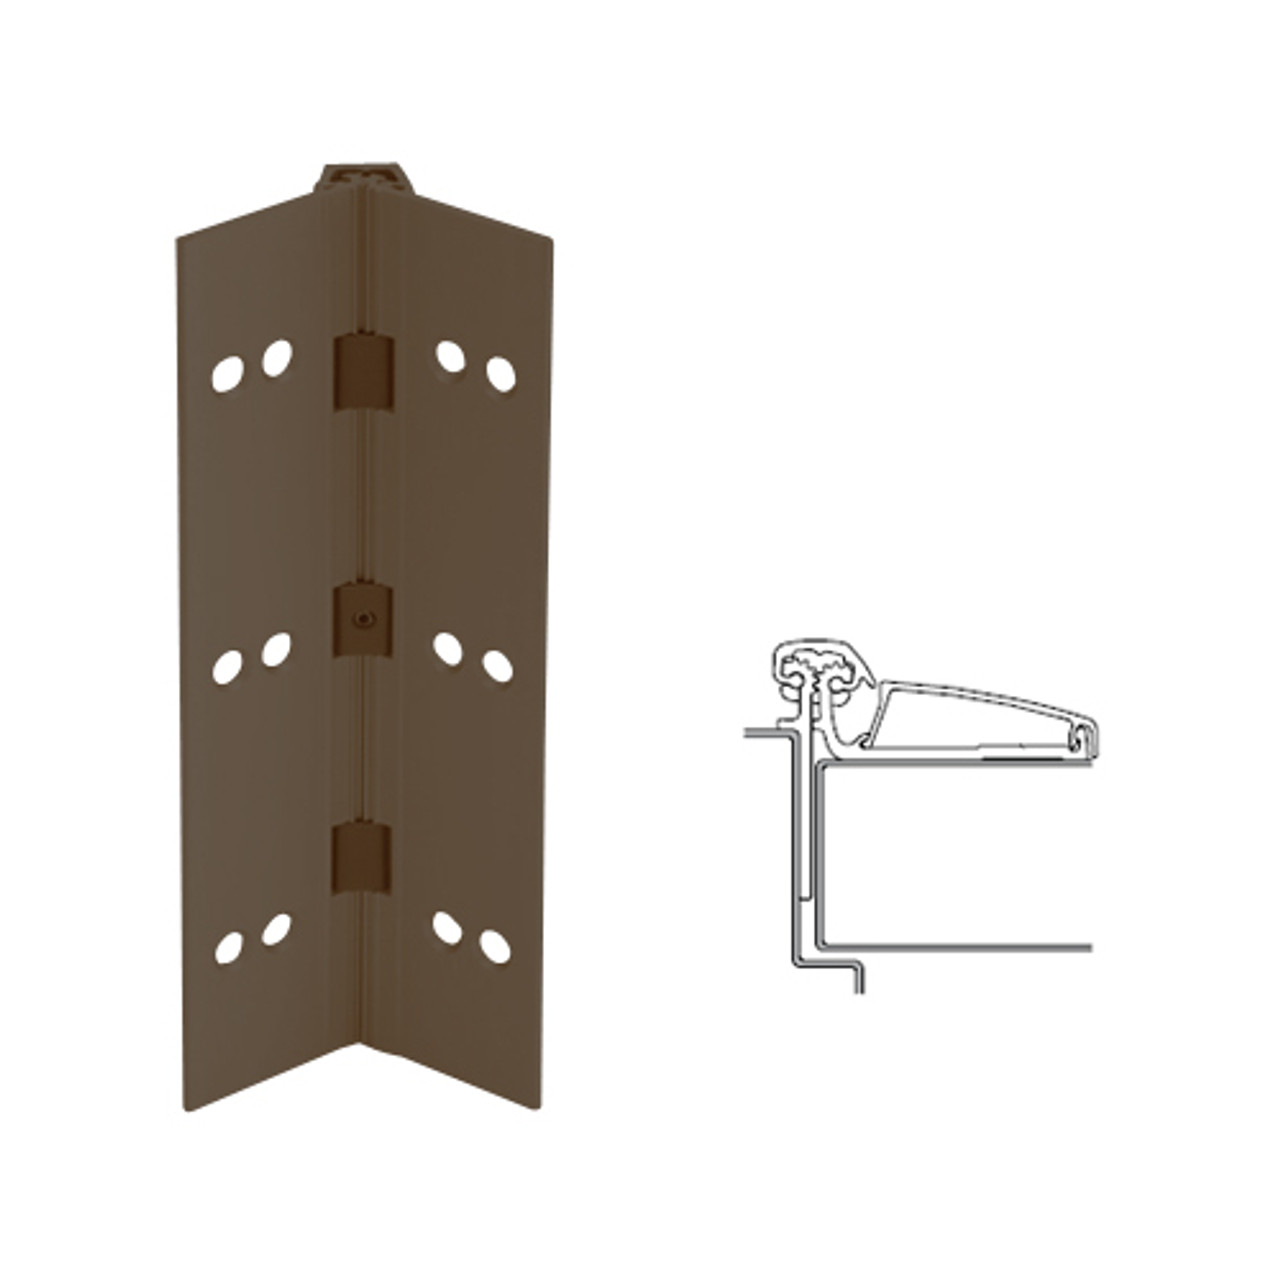 045XY-313AN-85-TEKWD IVES Adjustable Half Surface Continuous Geared Hinges with Wood Screws in Dark Bronze Anodized